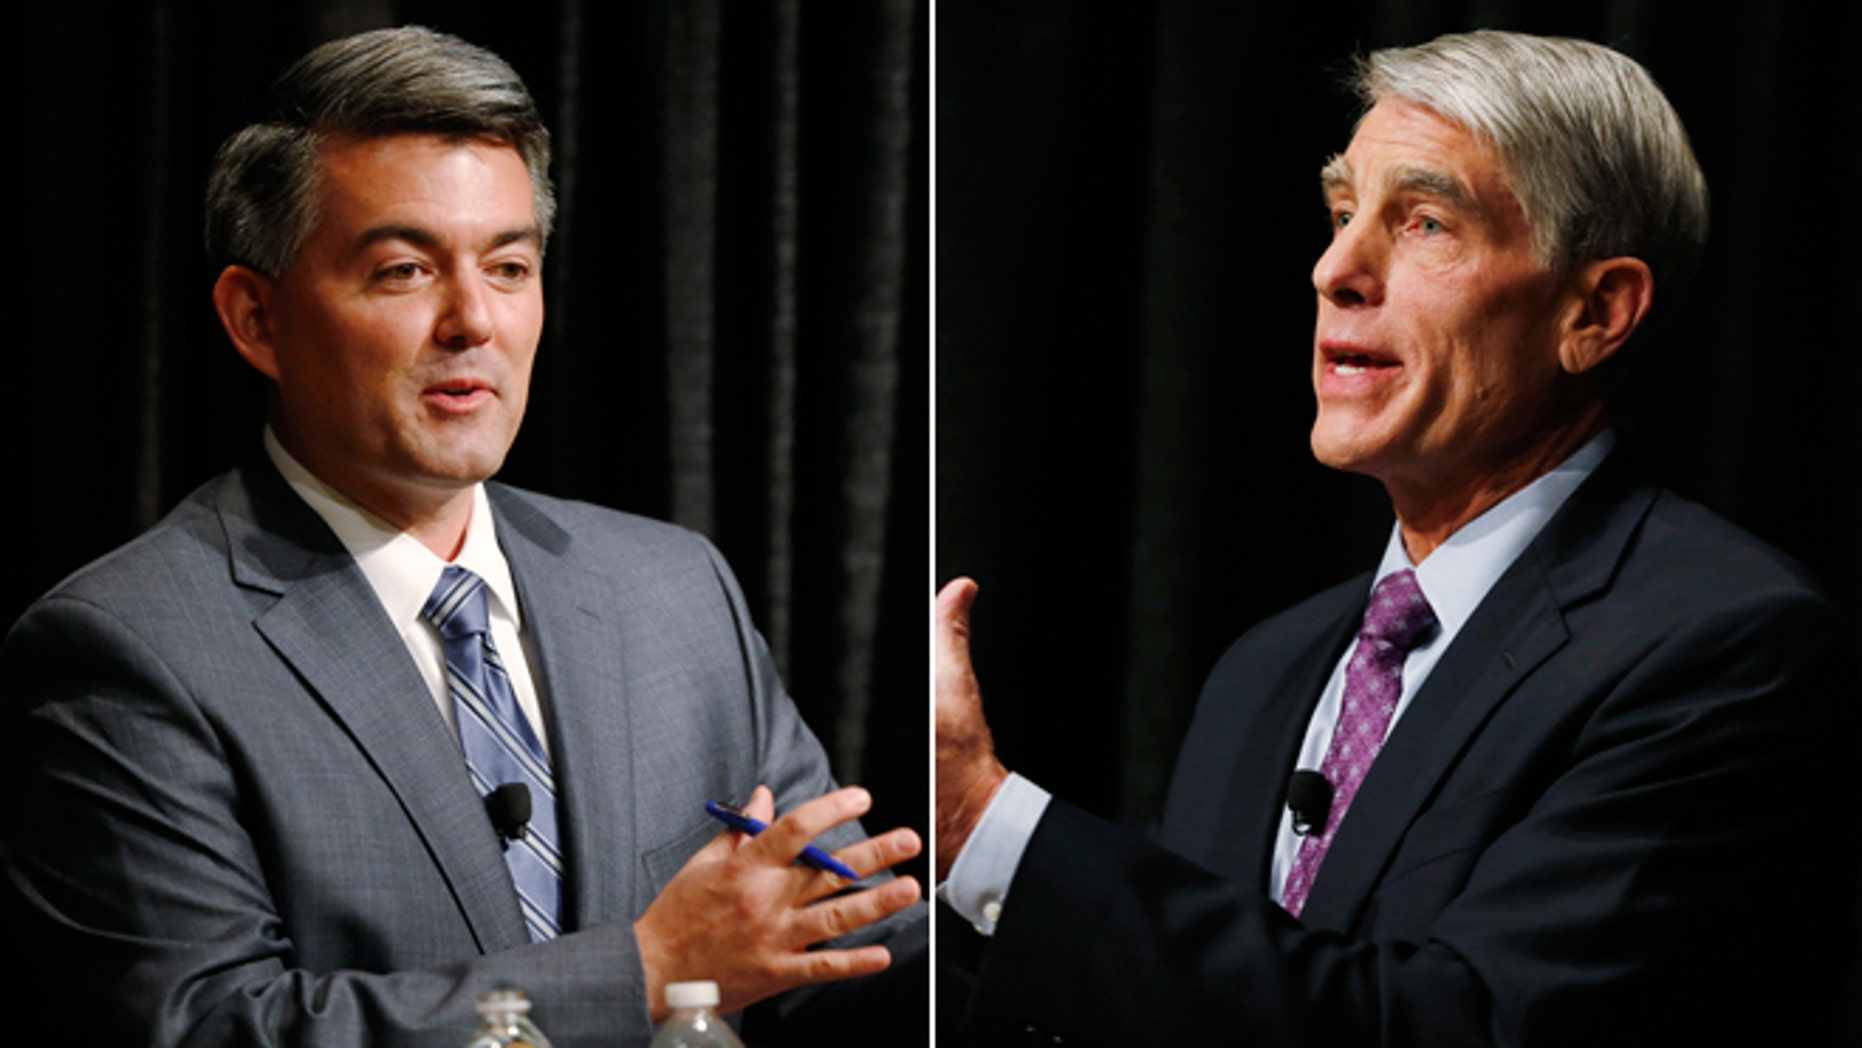 These Tuesday, Oct. 7, 2014 photos show U.S. Rep. Cory Gardner, R-Colo., and U.S. Sen. Mark Udall, D-Colo., during a debate at The Denver Post in Denver, Colo.